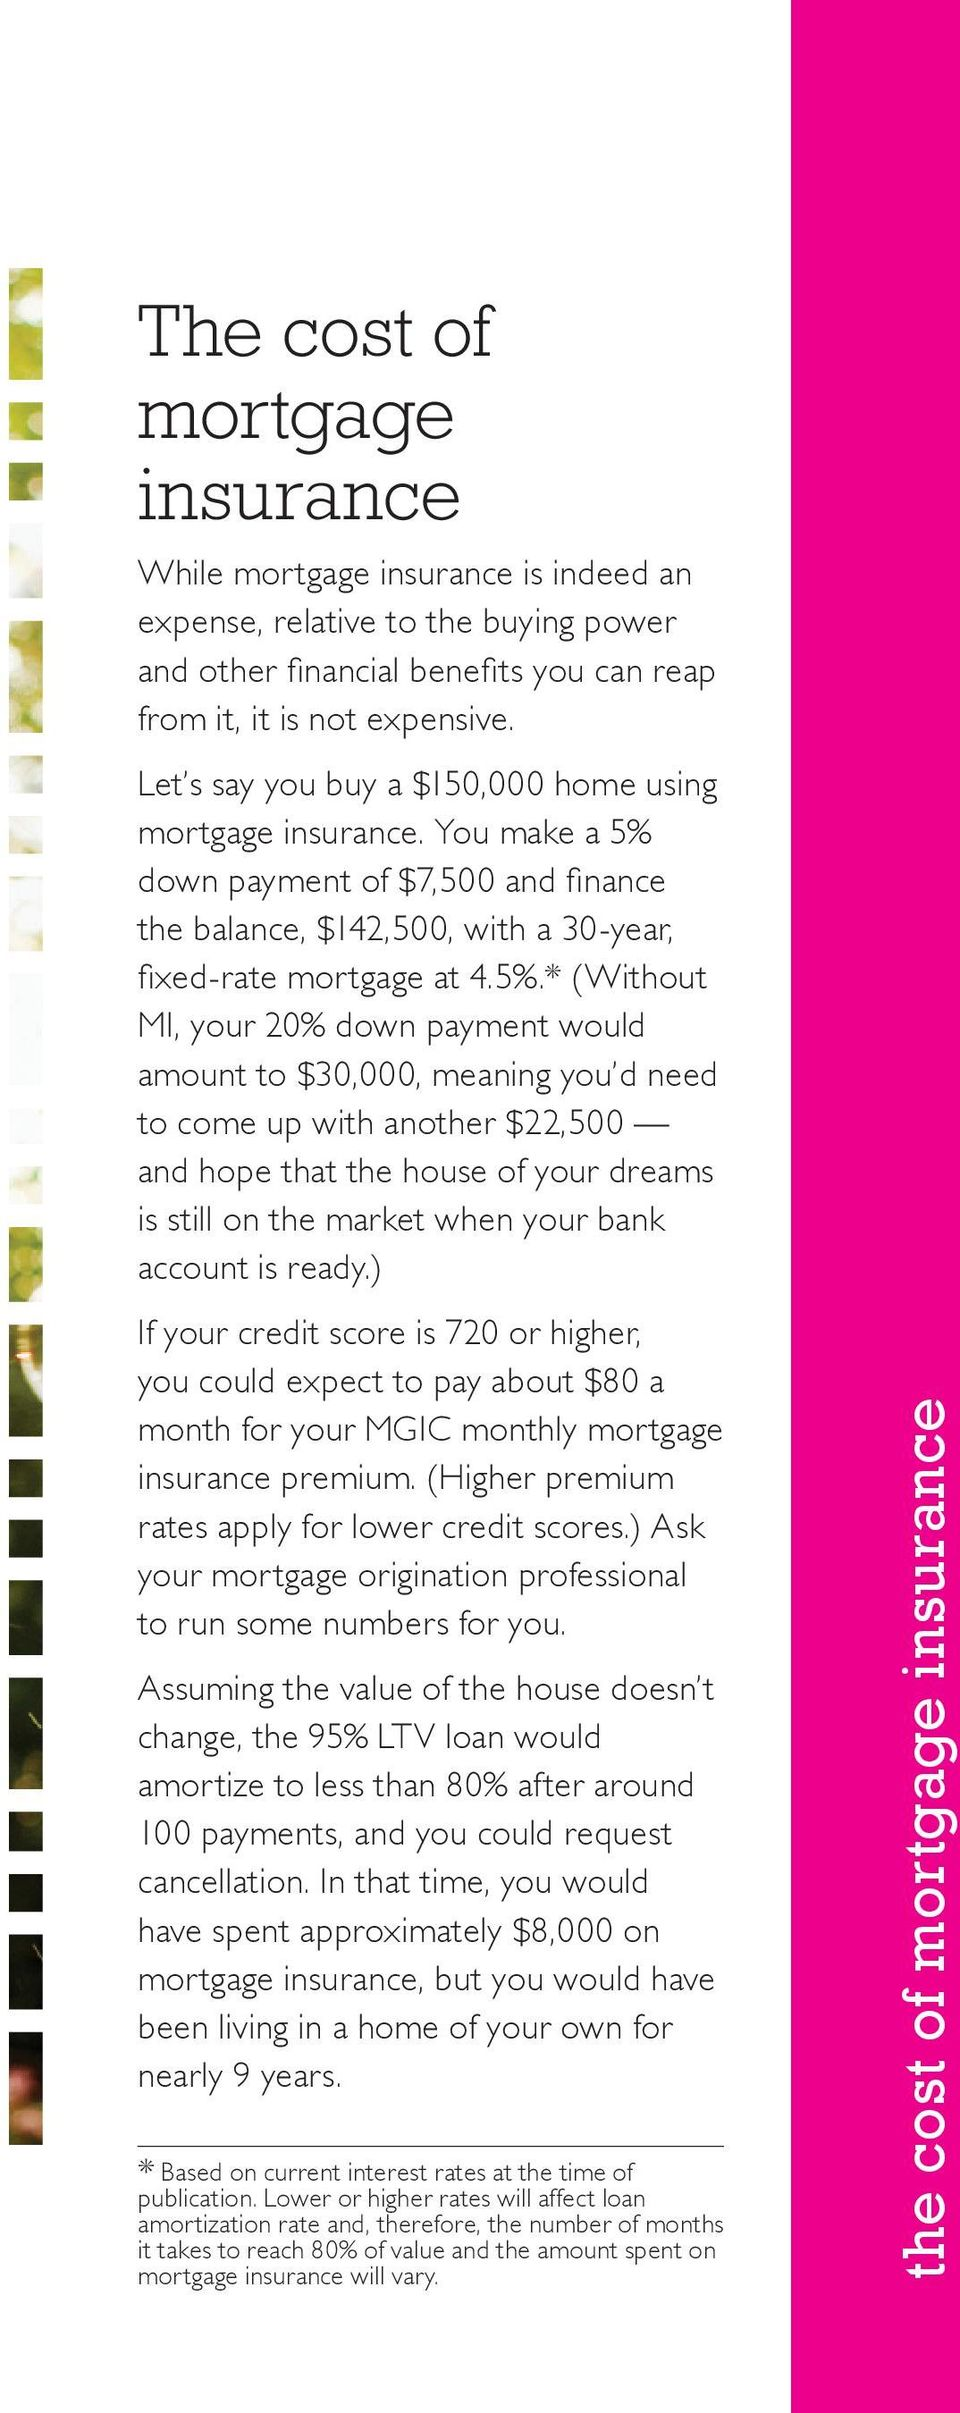 down payment of $7,500 and finance the balance, $142,500, with a 30-year, fixed-rate mortgage at 4.5%.